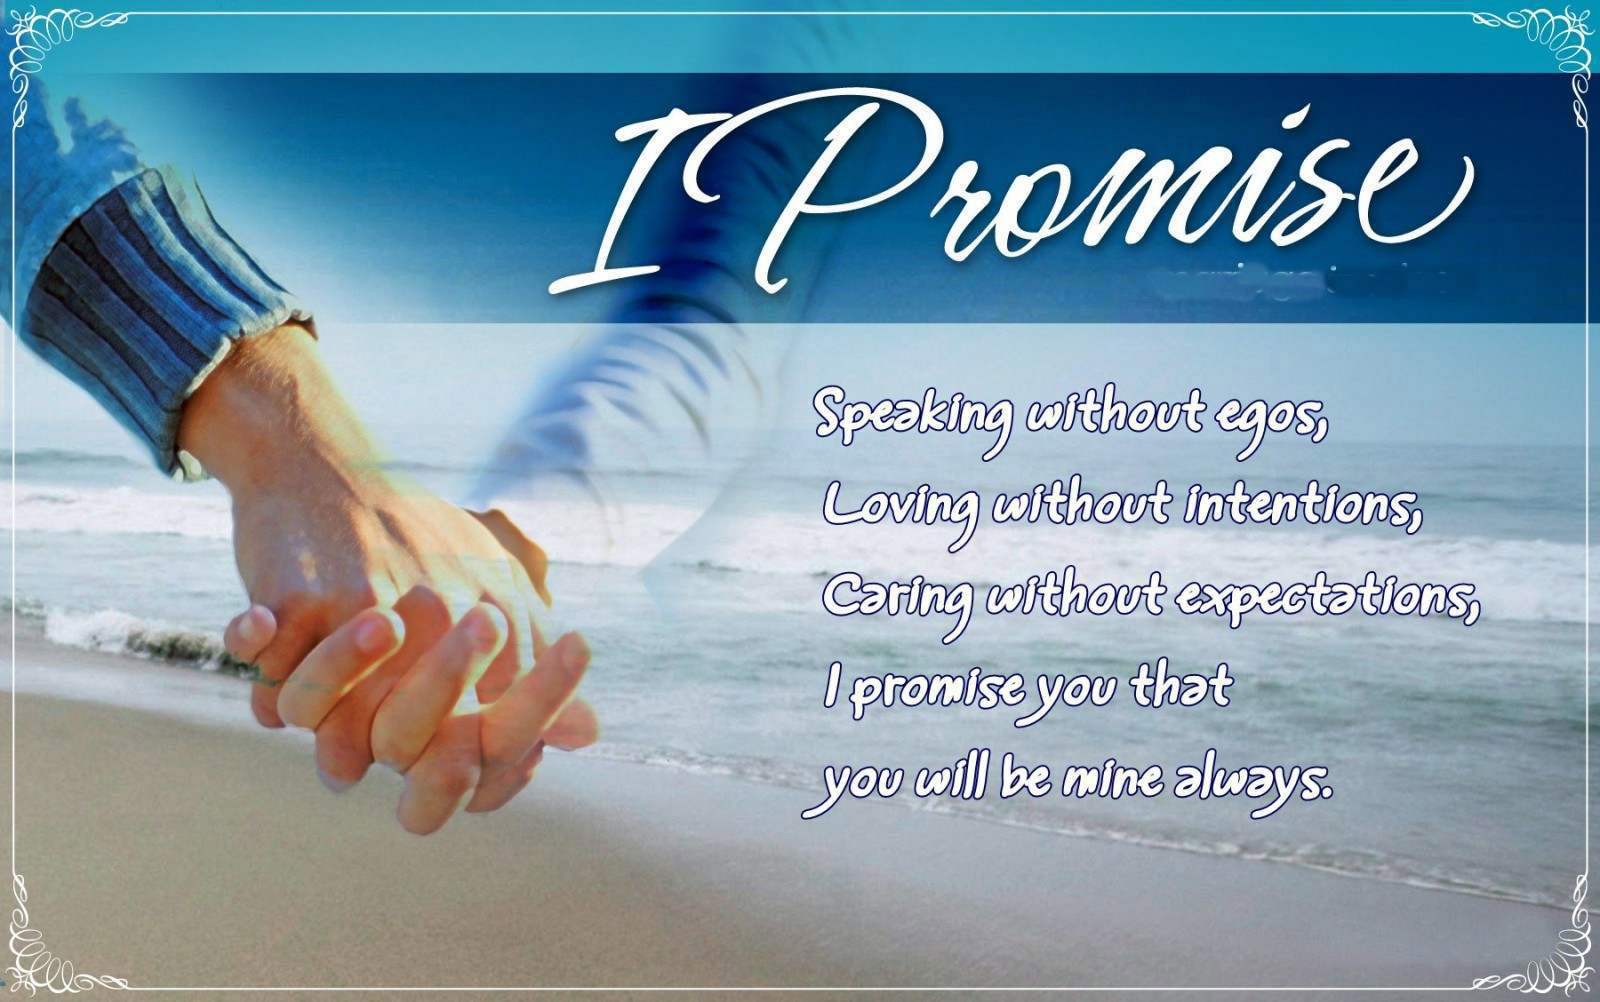 Happy-Promise-Day-2016-Fresh-HD-Wallpapers